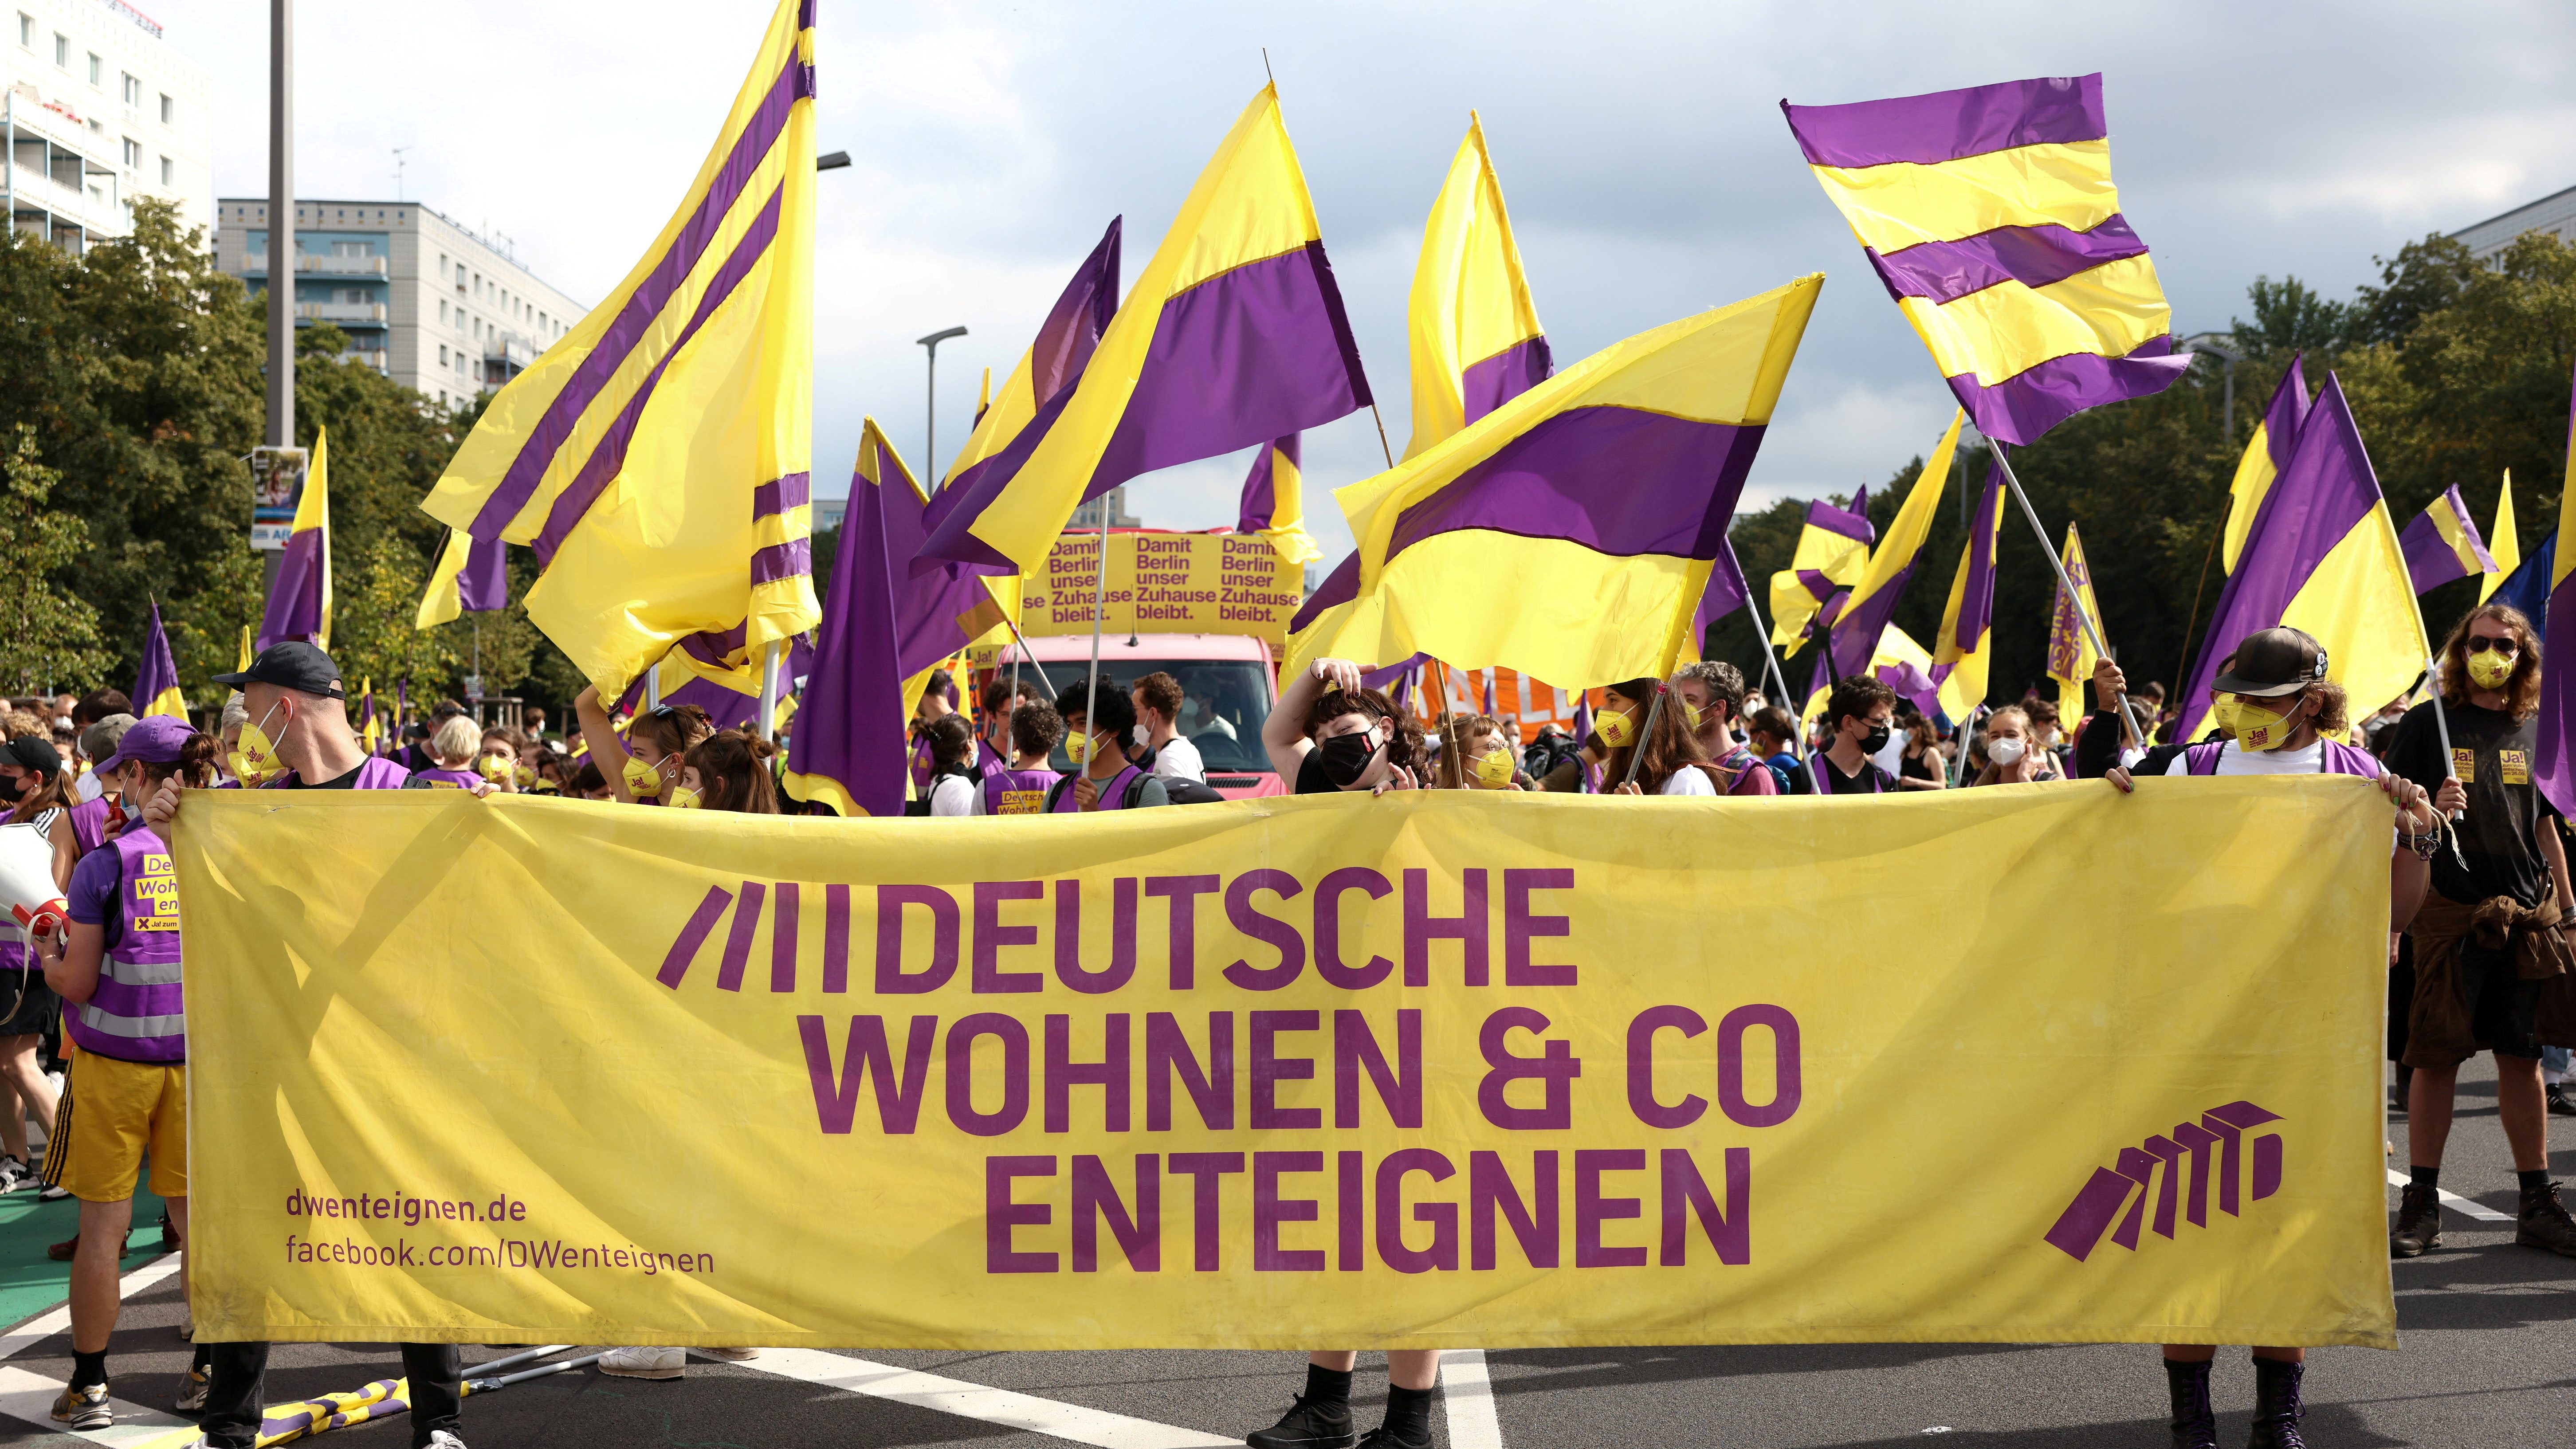 people marching waving yellow and purple flags, and holding a yellow banner with purple text written in German